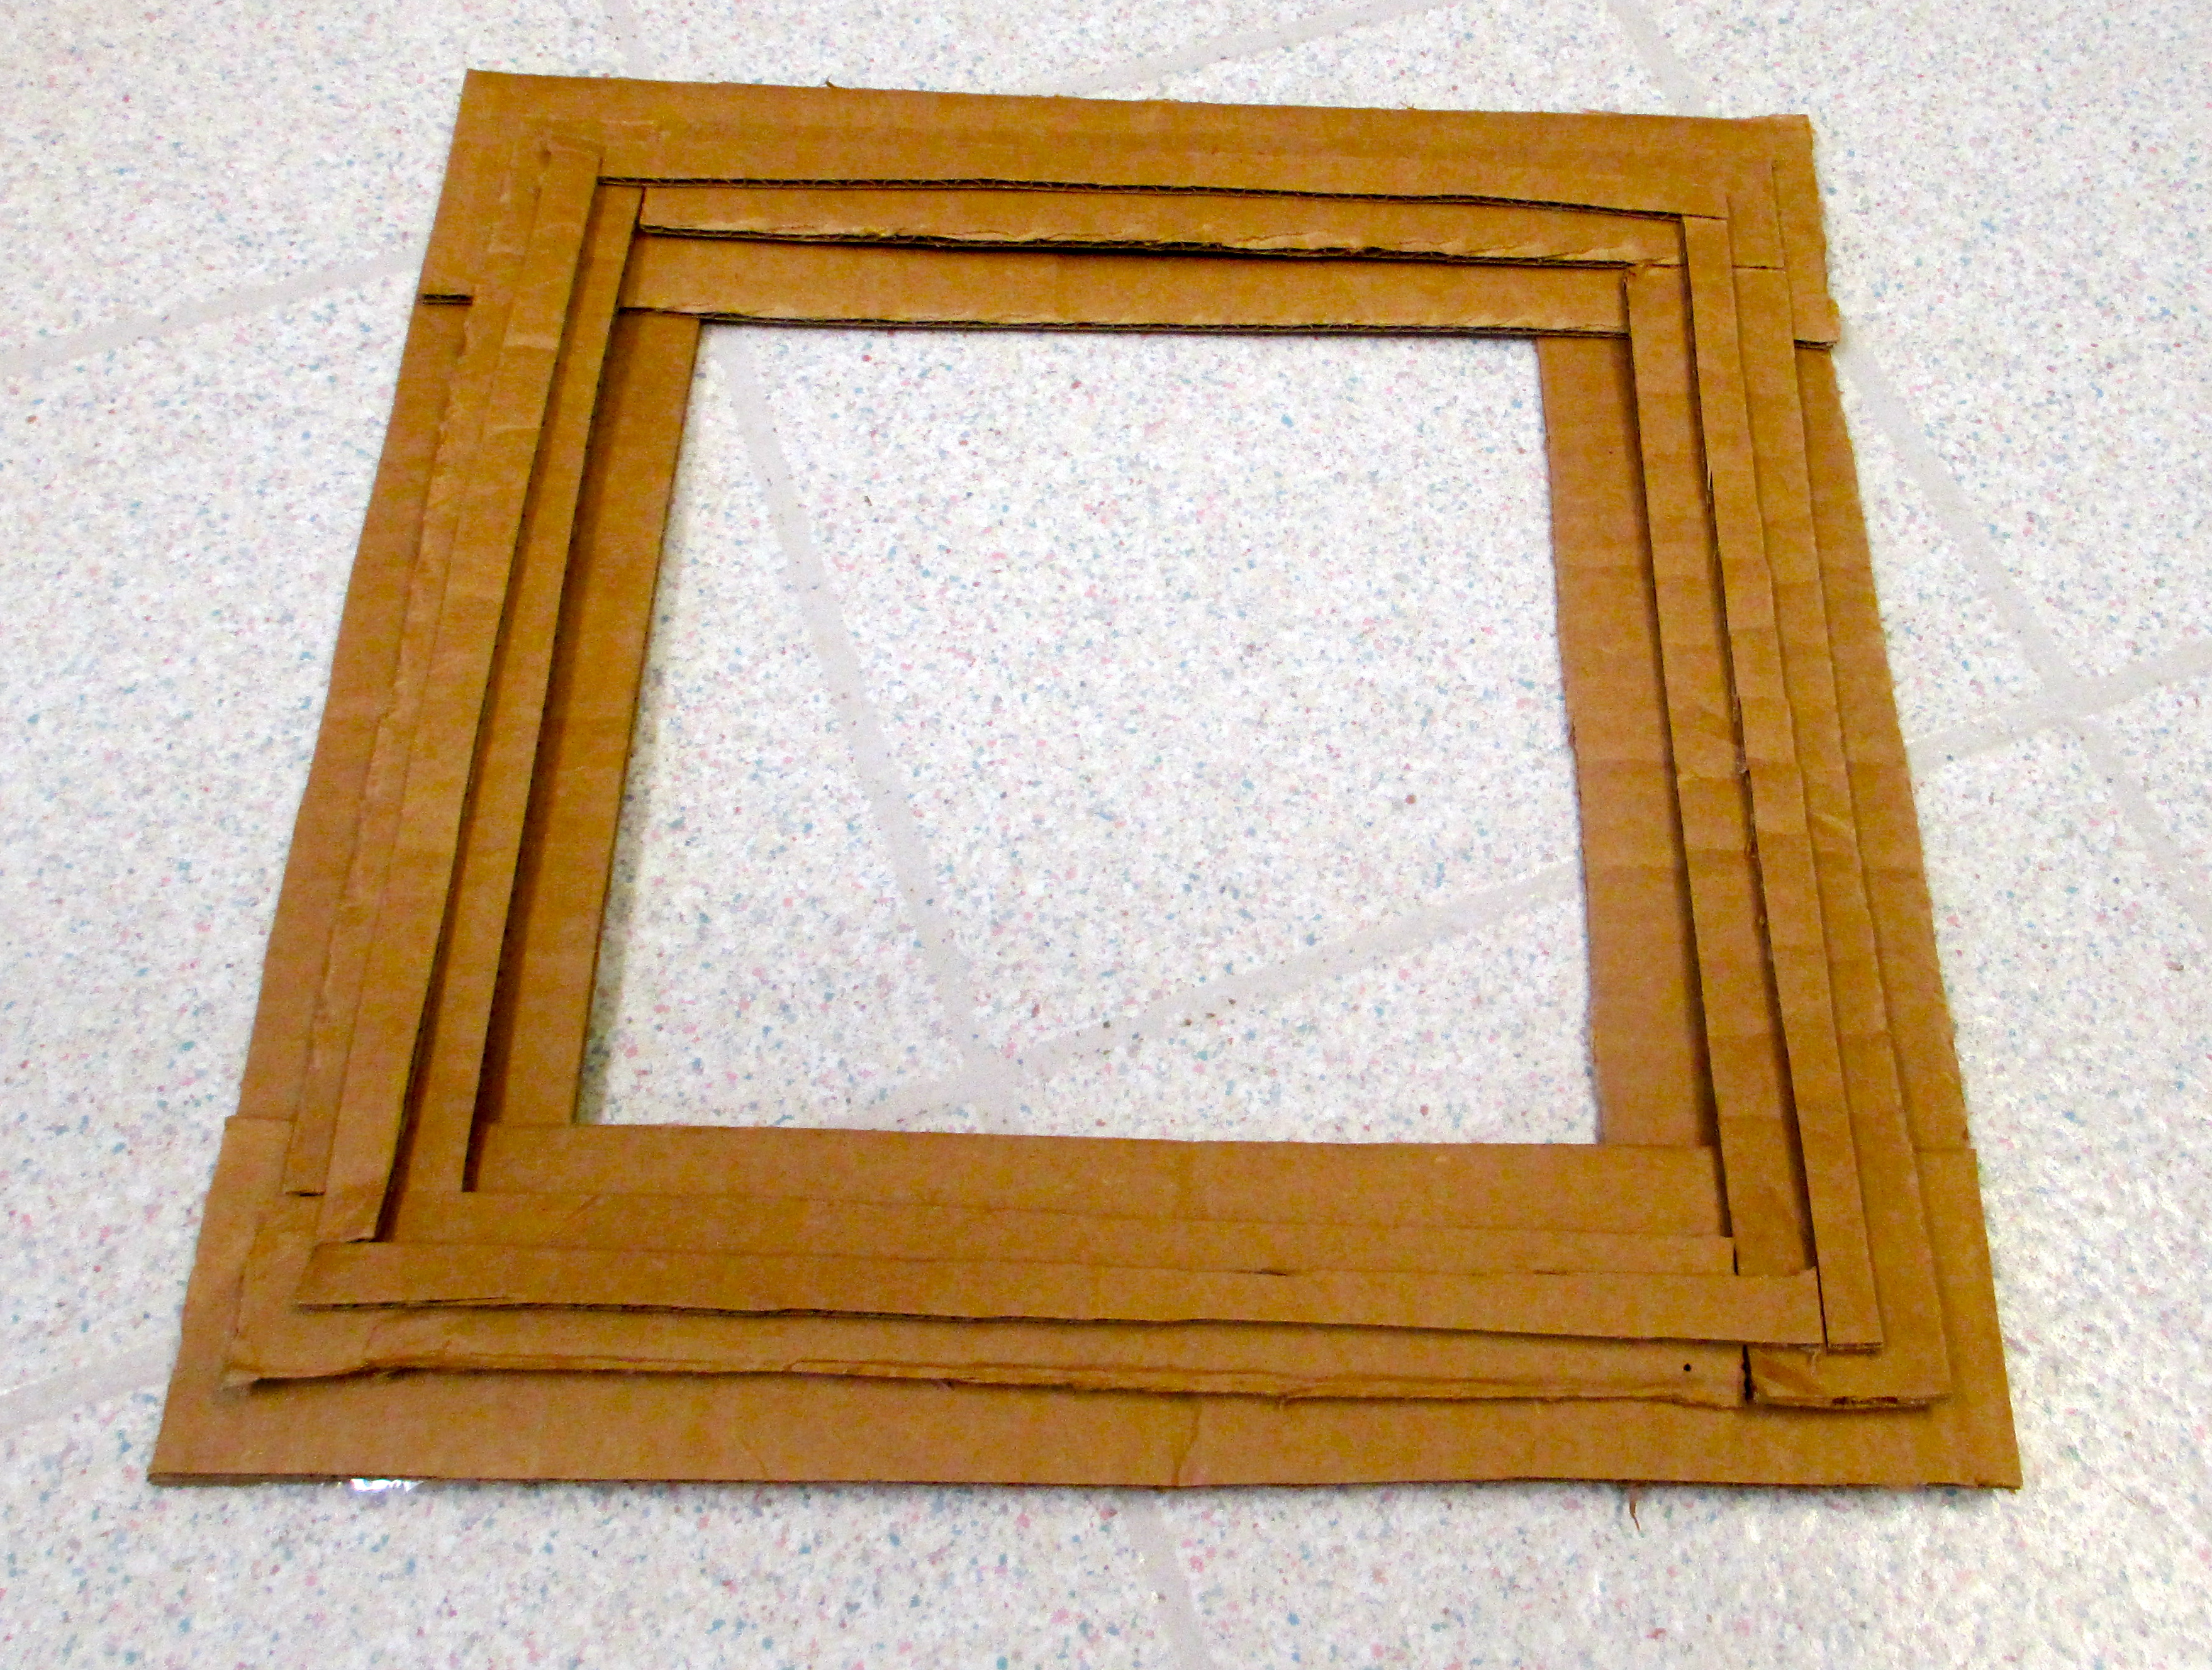 Picture of Use Double-sided Tape to Layer New Flaps Atop Frame.